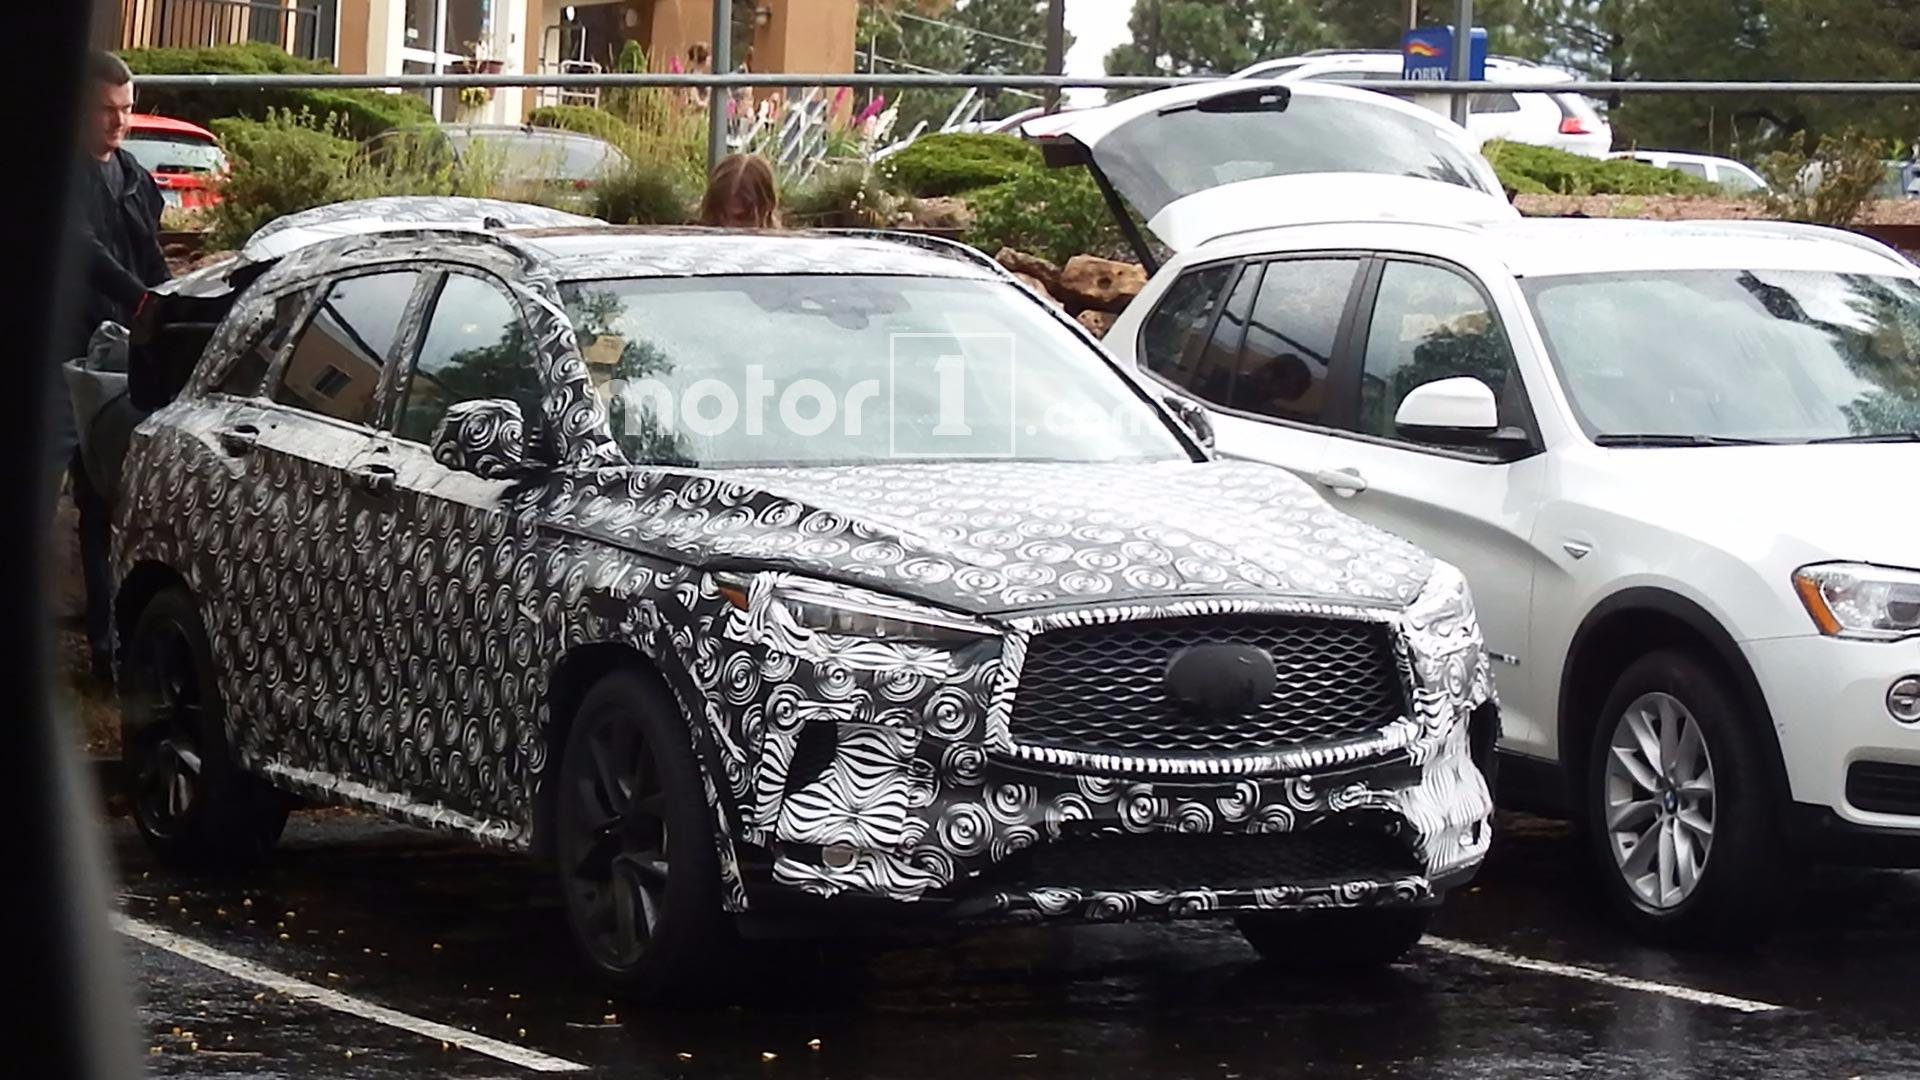 2018 Infiniti Qx50 Spied With Undisguised Exterior